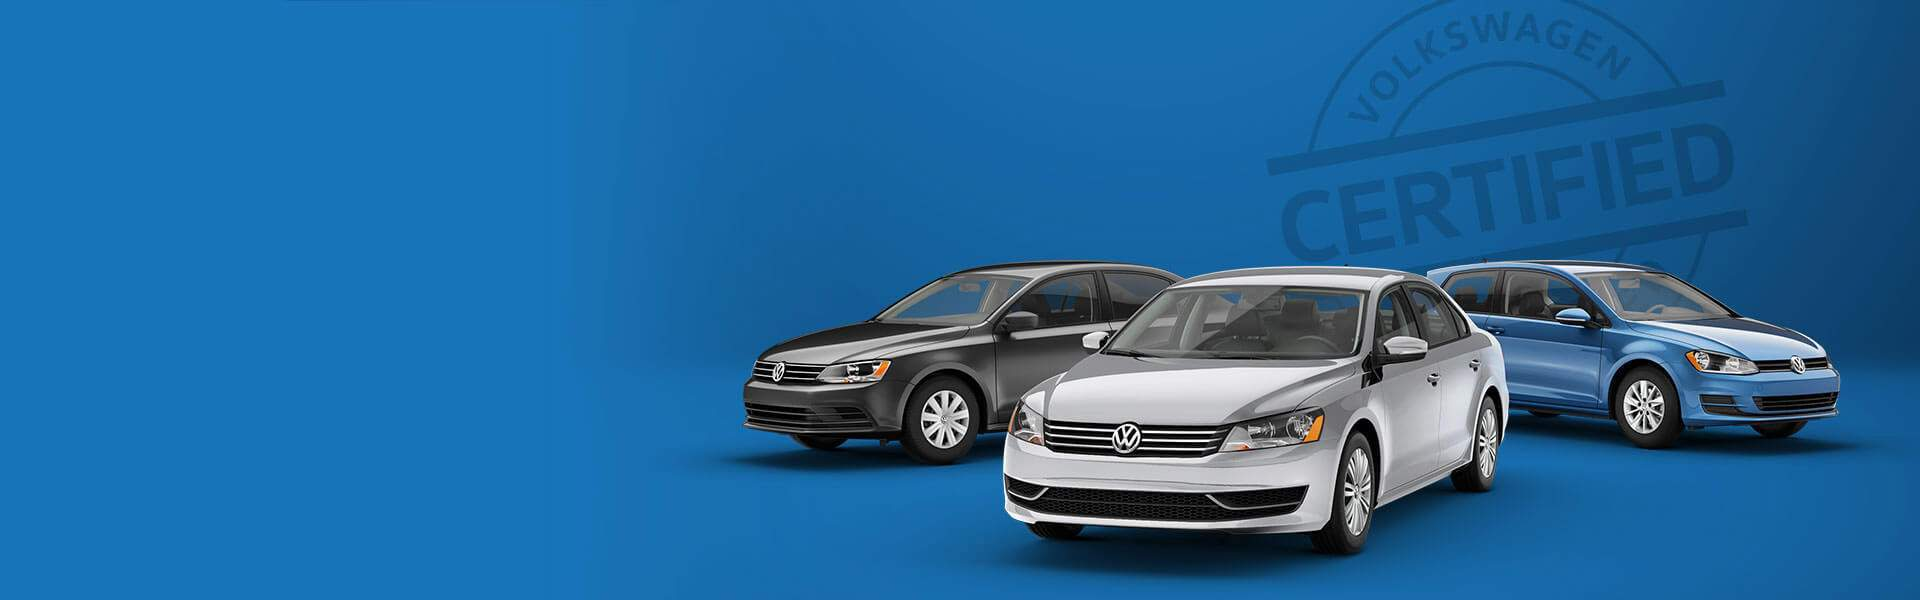 Volkswagen Certified Pre-Owned in Middletown, NY